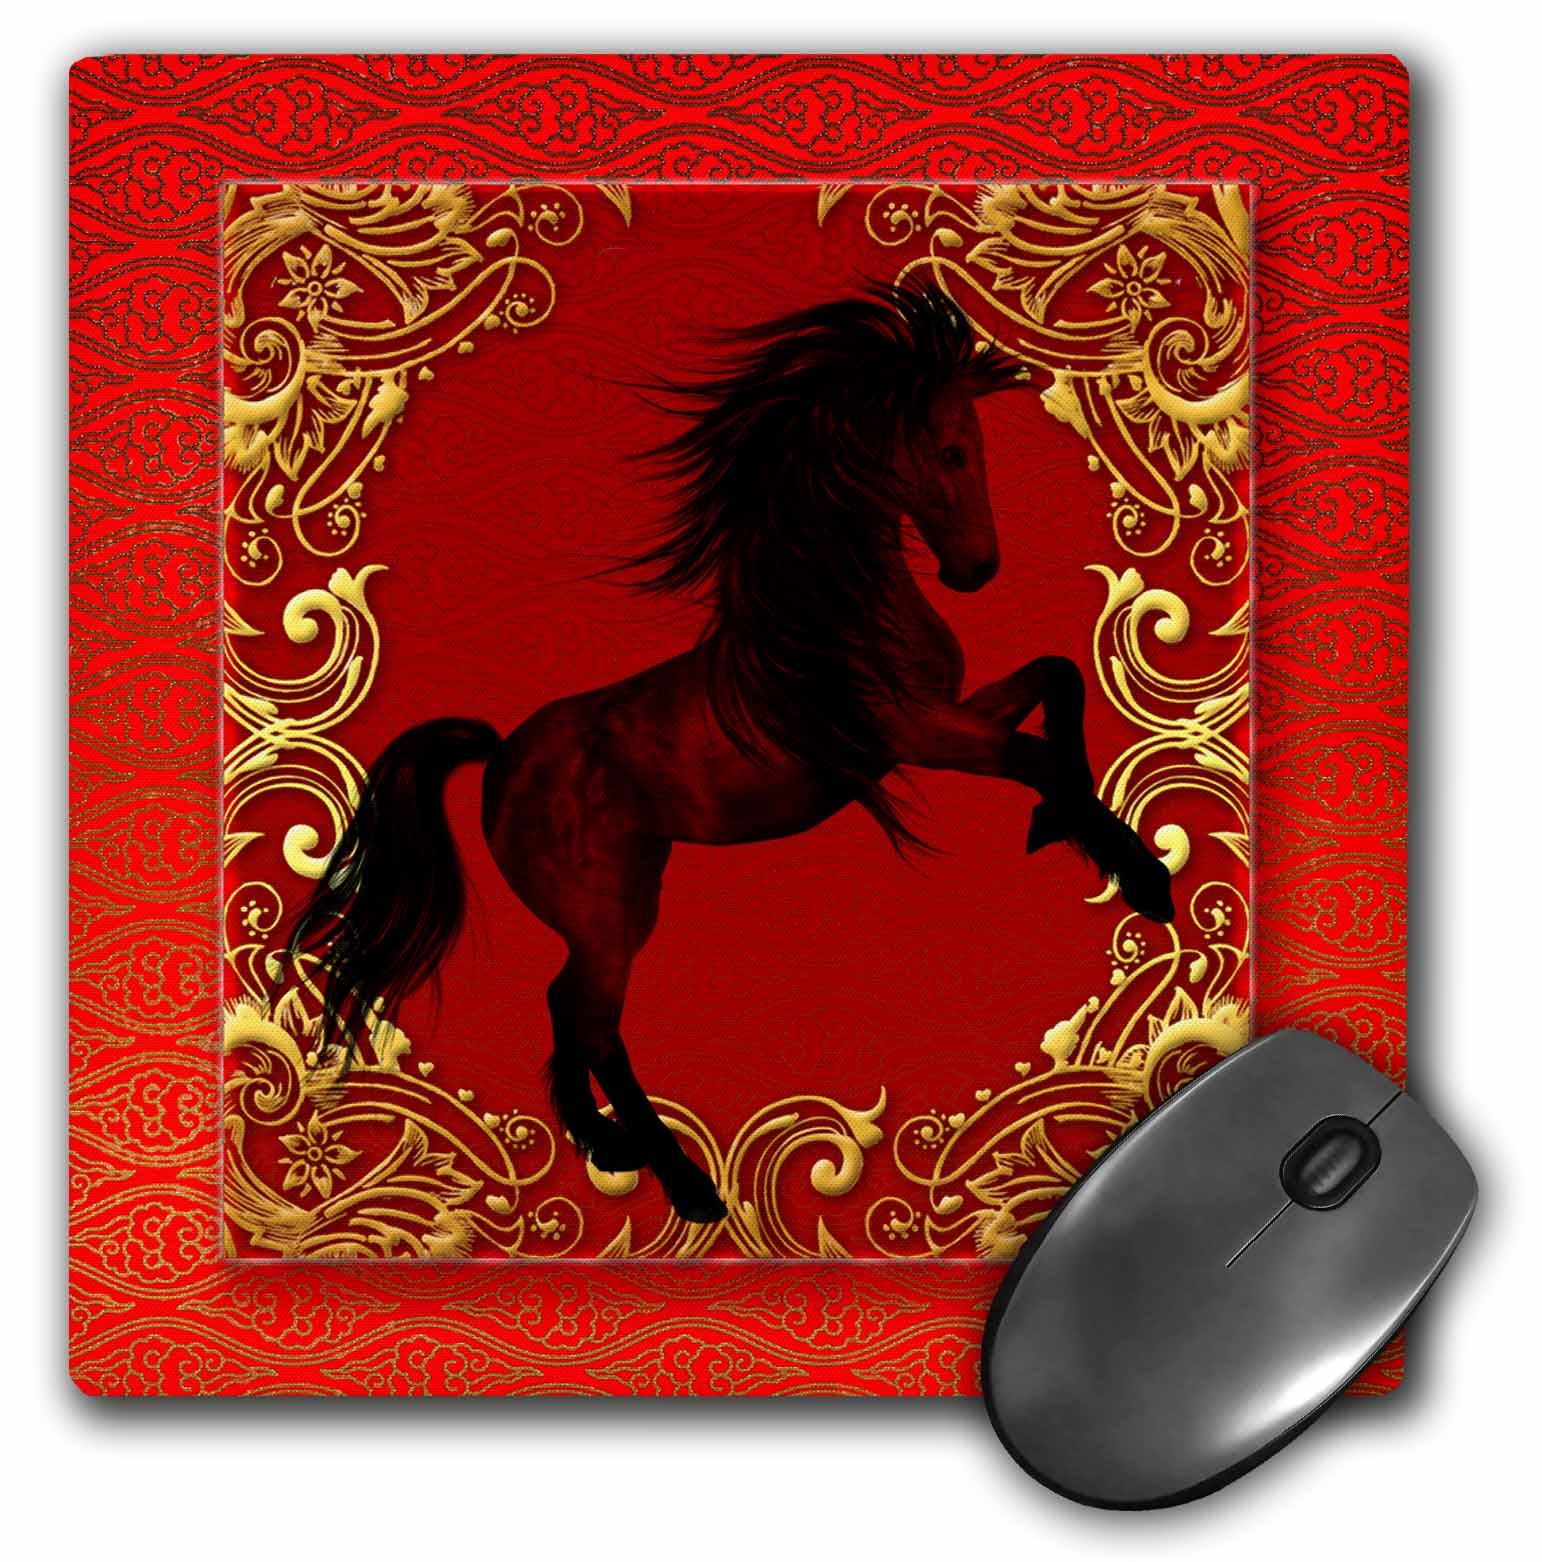 3dRose Chinese Zodiac Year of the Horse Chinese New Year Red, Gold and Black , Mouse Pad, 8 by 8 inches